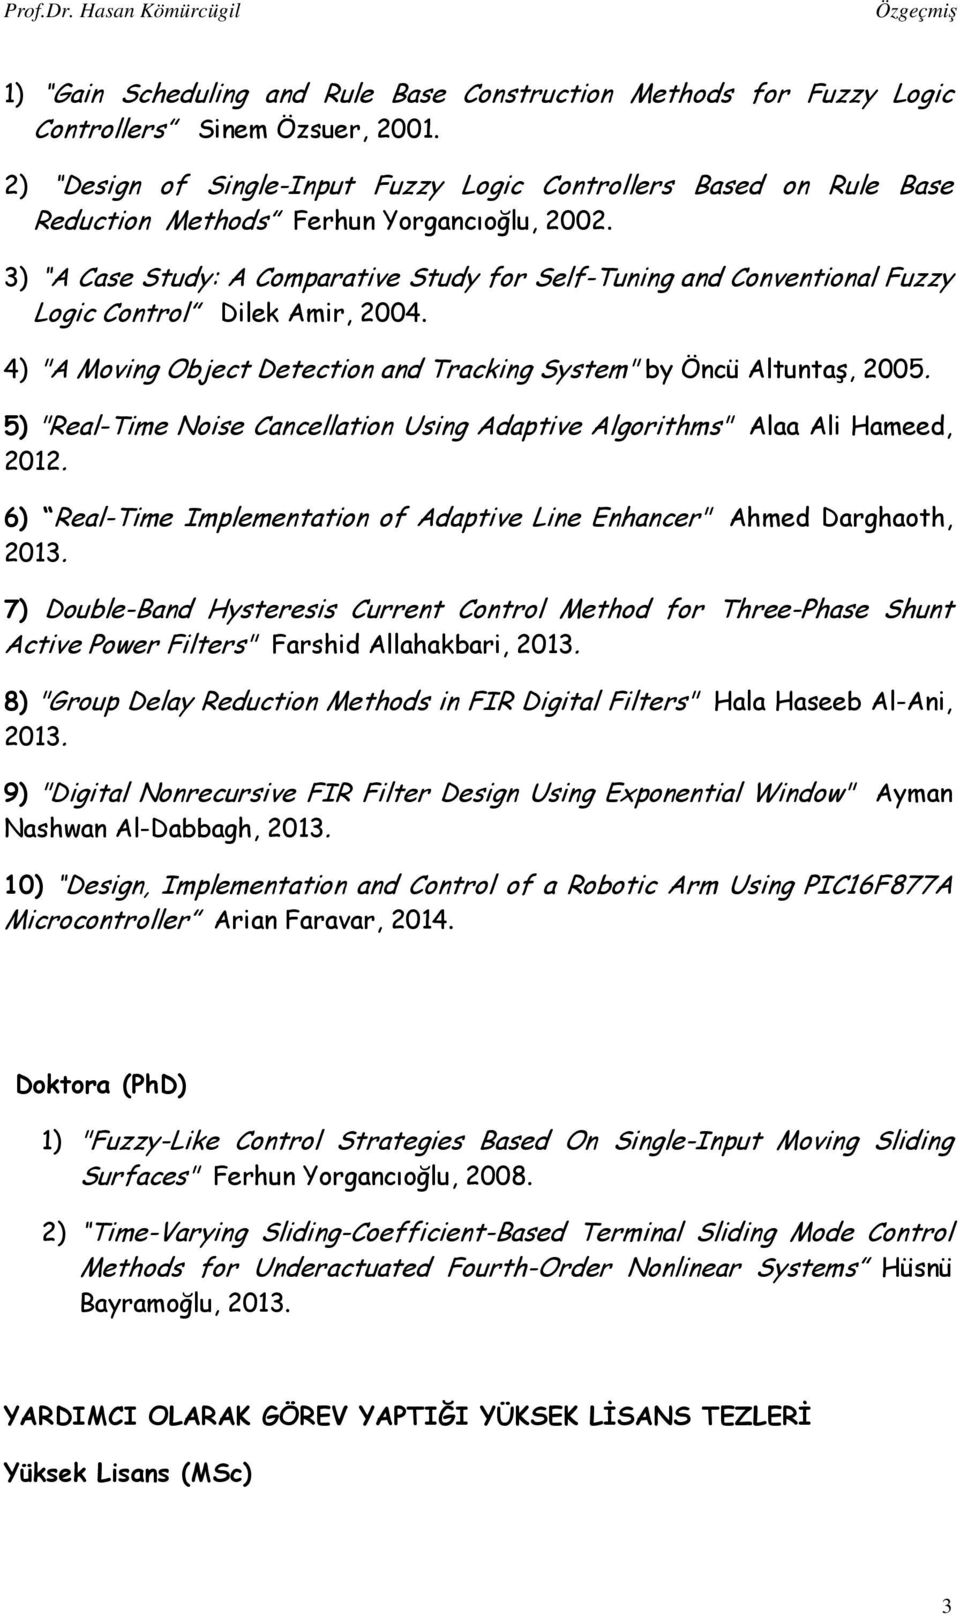 "3) A Case Study: A Comparative Study for Self-Tuning and Conventional Fuzzy Logic Control Dilek Amir, 2004. 4) ""A Moving Object Detection and Tracking System"" by Öncü Altuntaş, 2005."